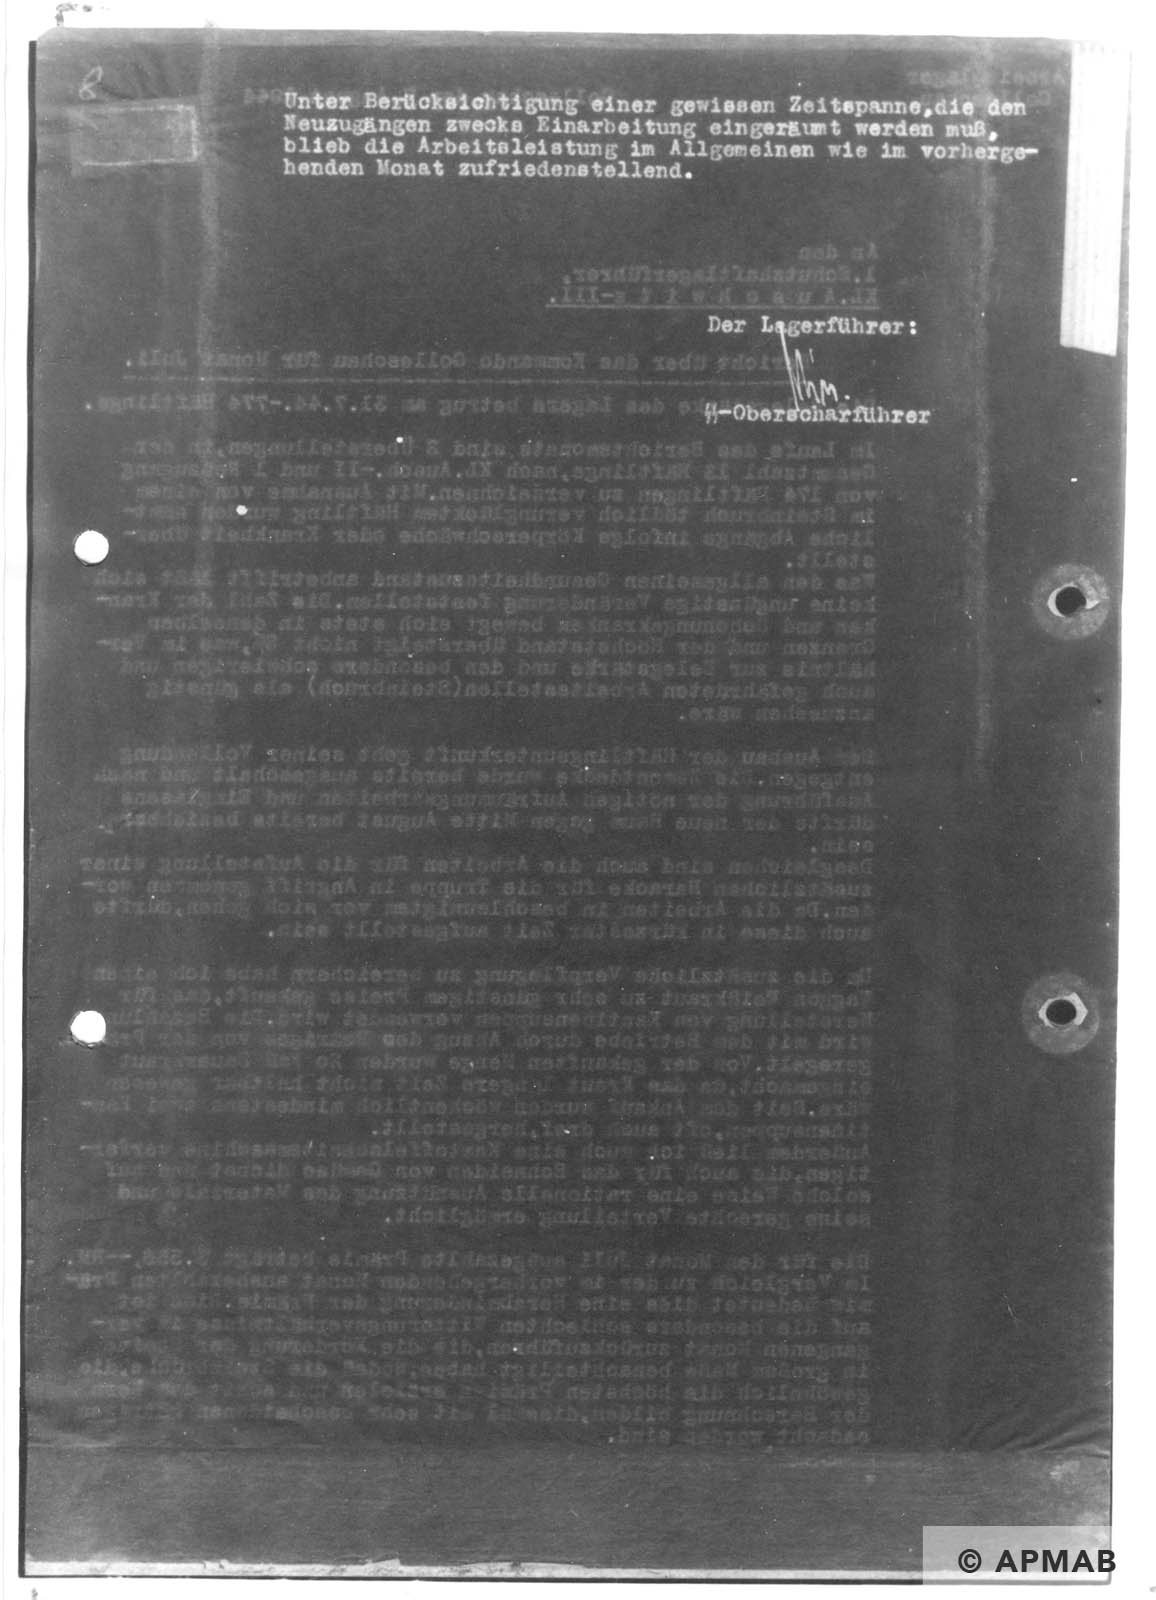 Report on Golleschau sub camp July 1944 APMAB nr inw. 30523 str. 37